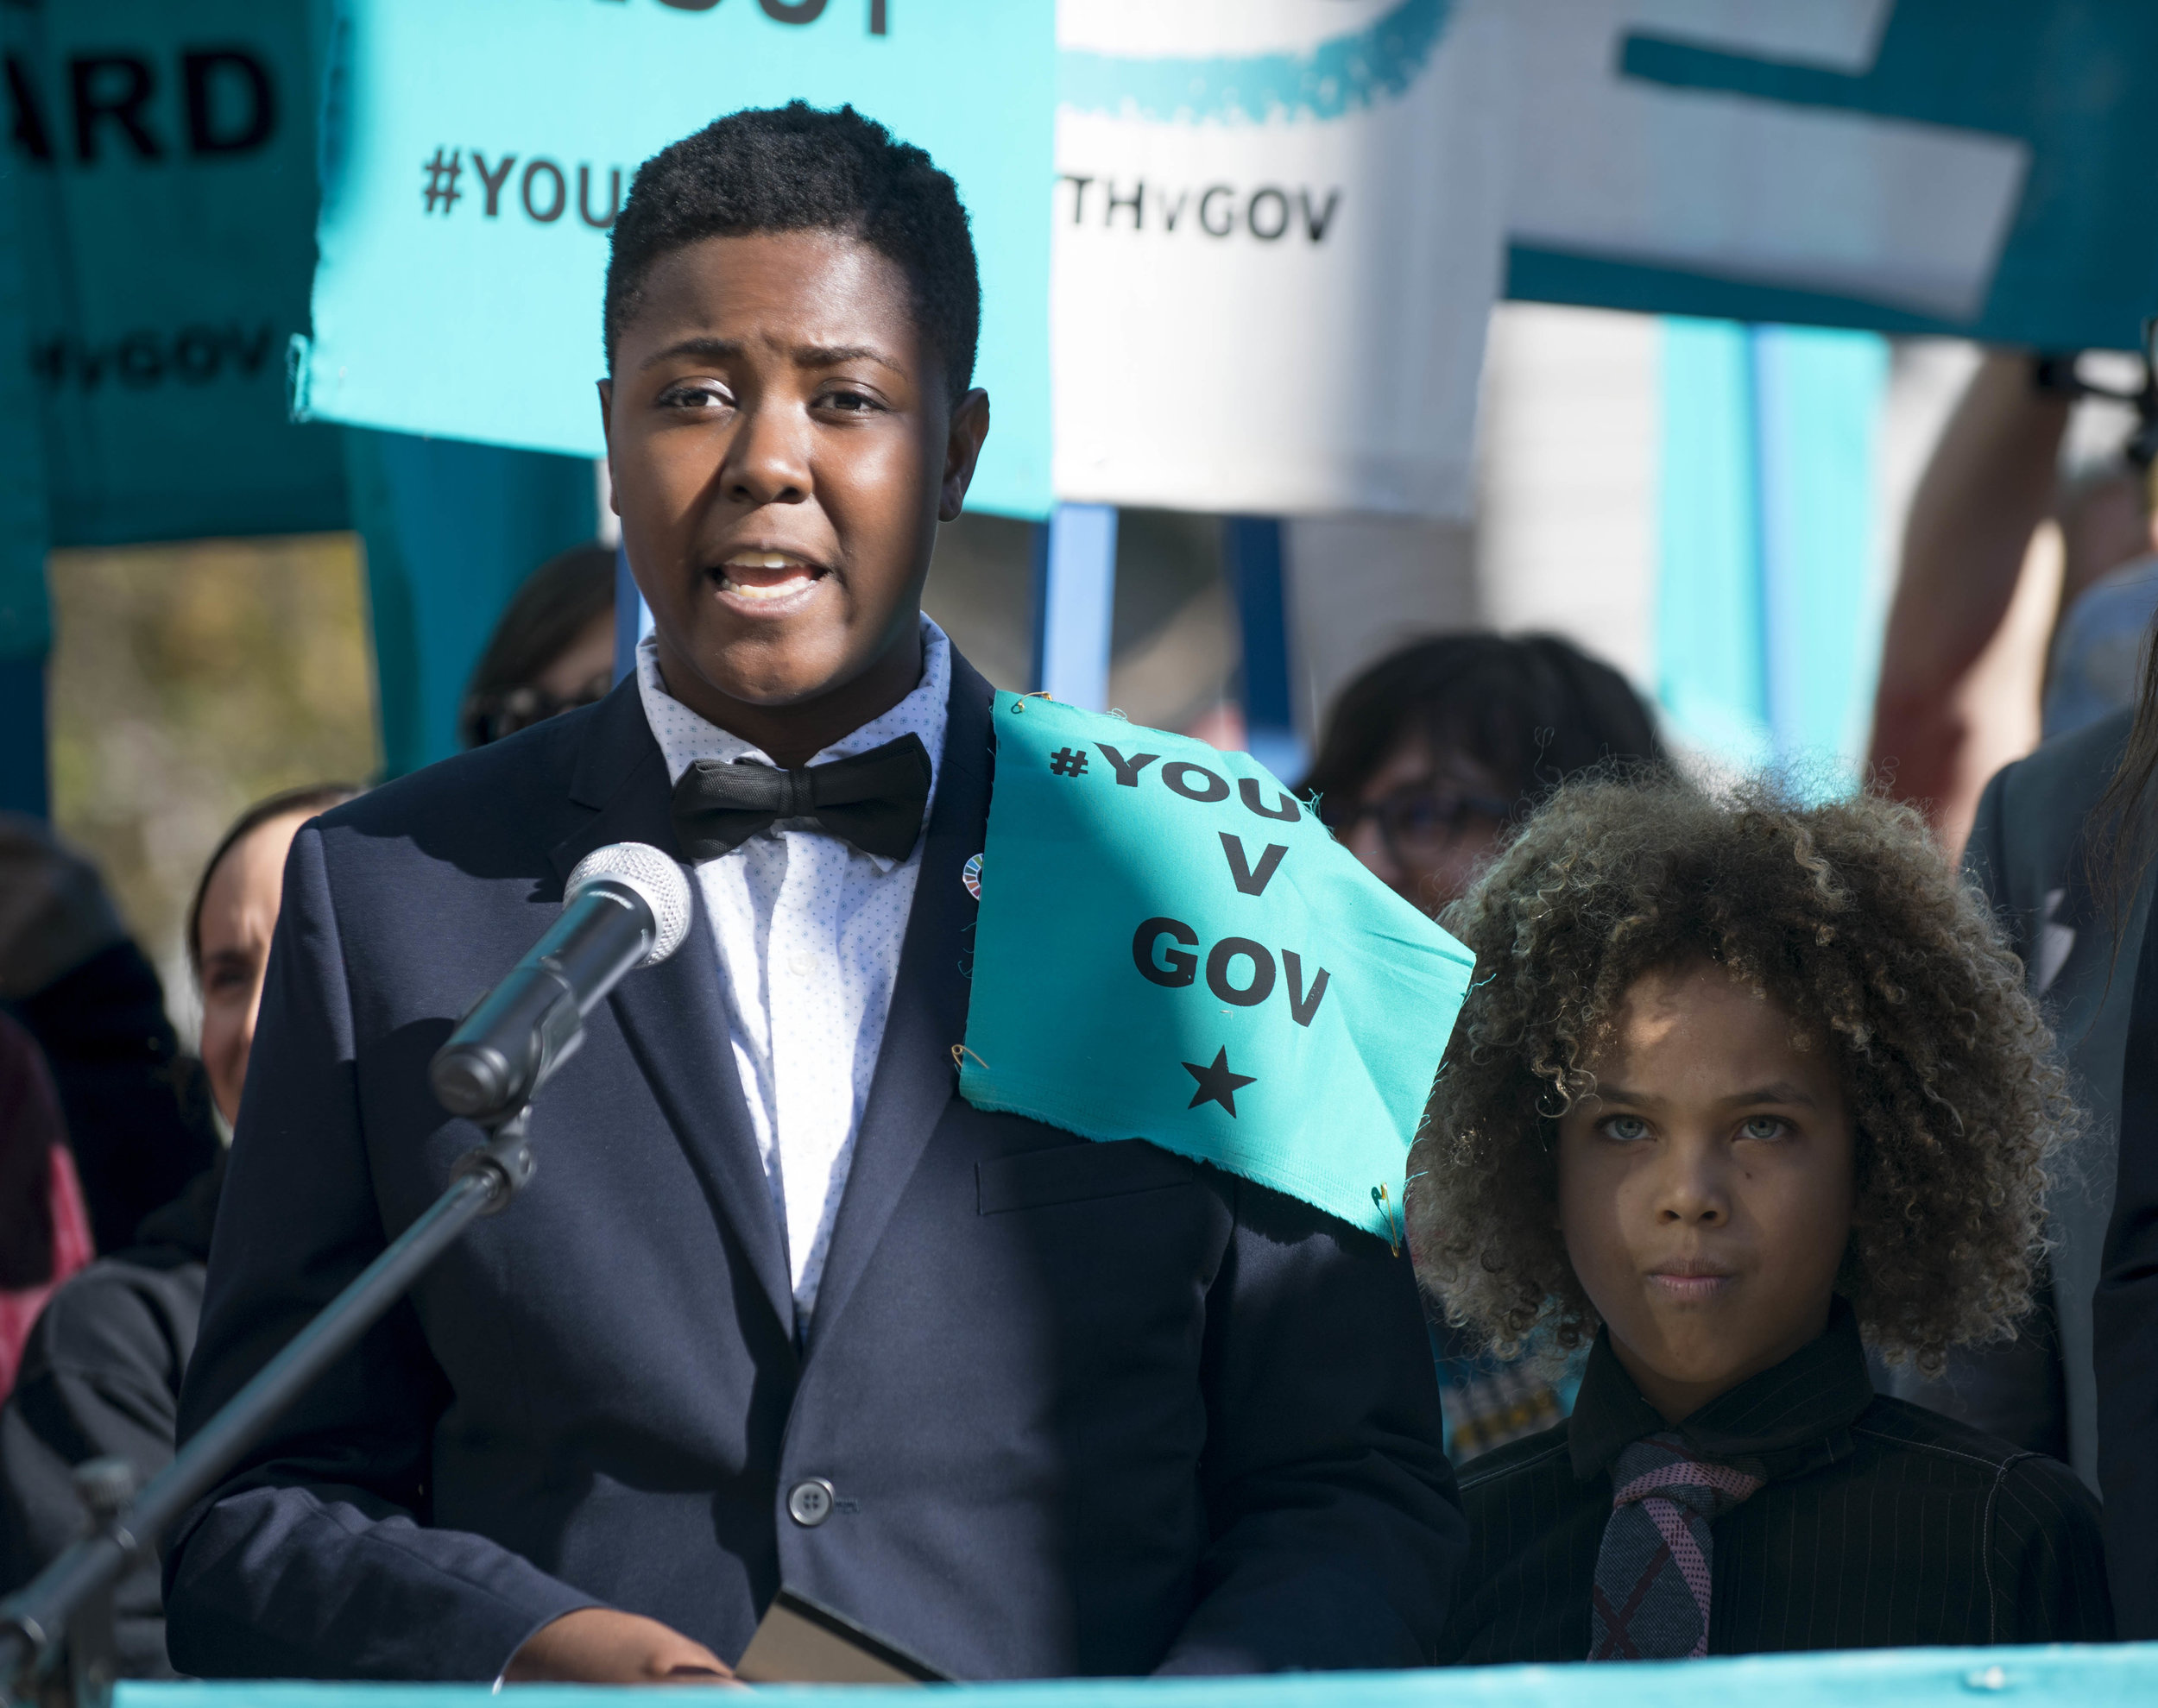 Youth plaintiff Vic Barrett speaks at a rally following a hearing in the landmark  Juliana v. U.S.  climate change lawsuit at the 9th Circuit Court of Appeals in San Francisco. Photo: Robin Loznak / Our Children's Trust